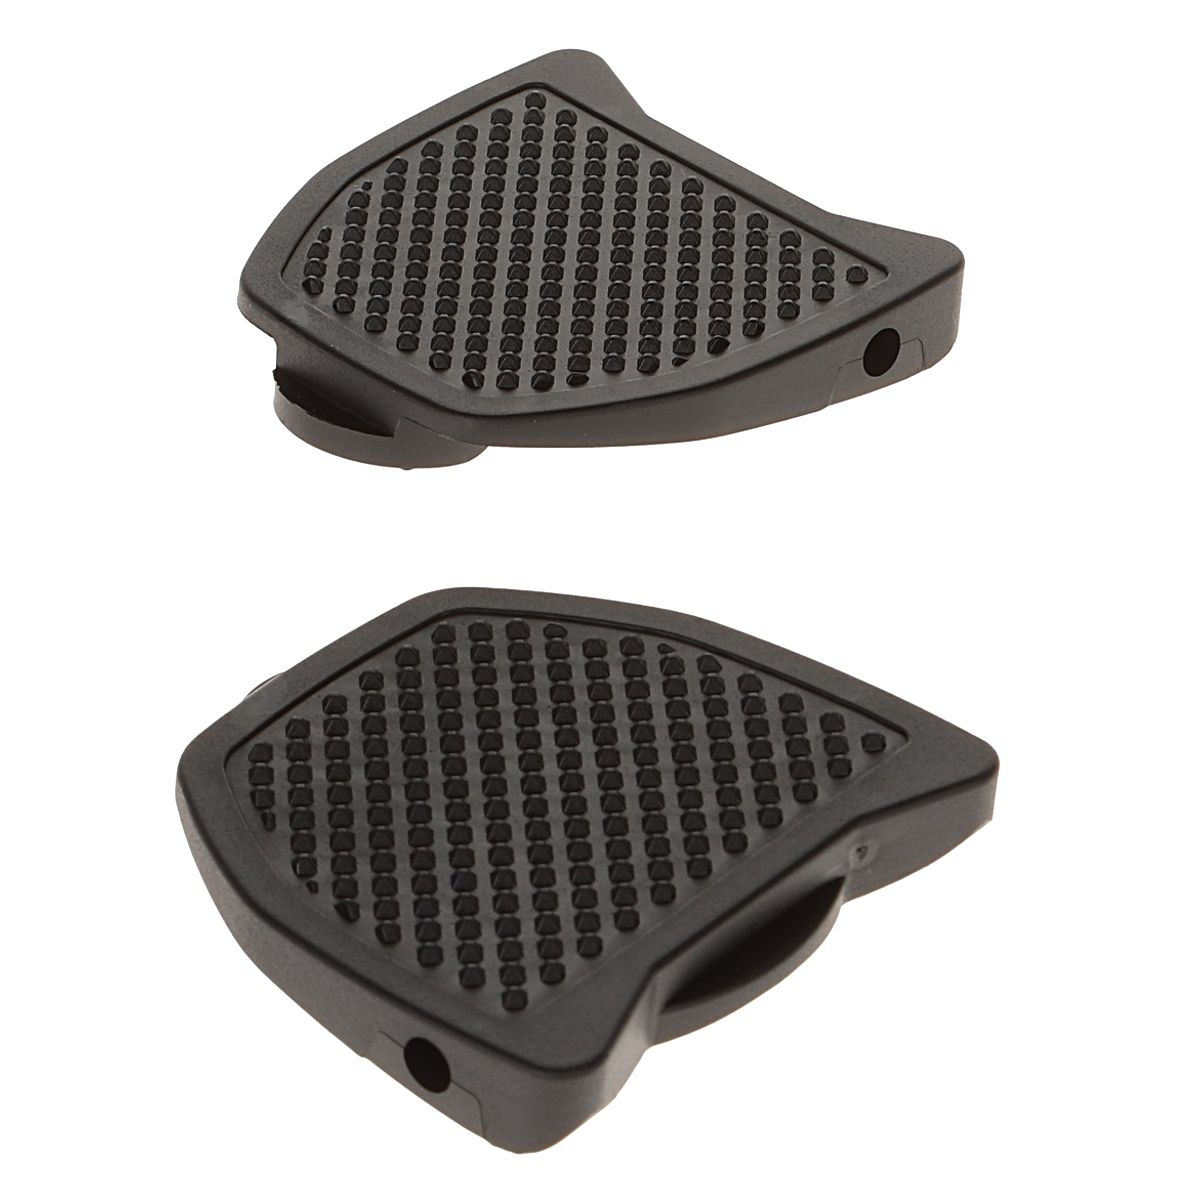 Pedal Plates for Clipless Shimano SPD-SL Pedals